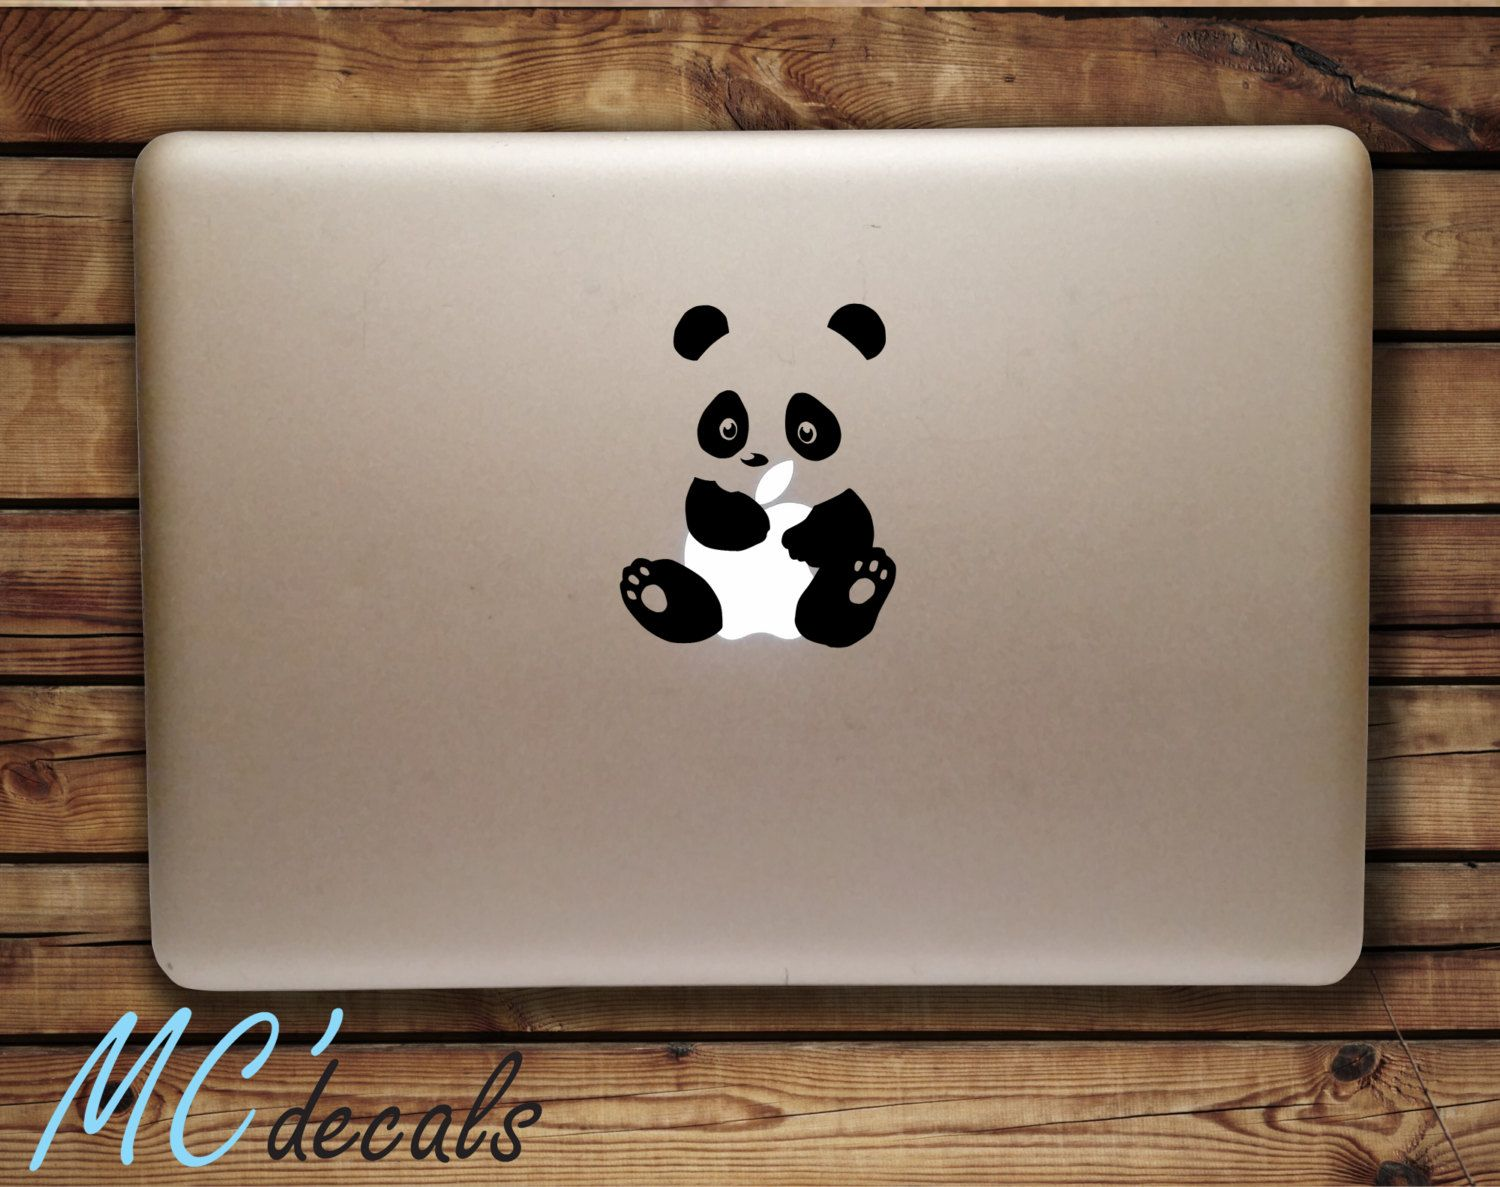 Pin By Hailey Holt On Macbook Air Macbook Stickers